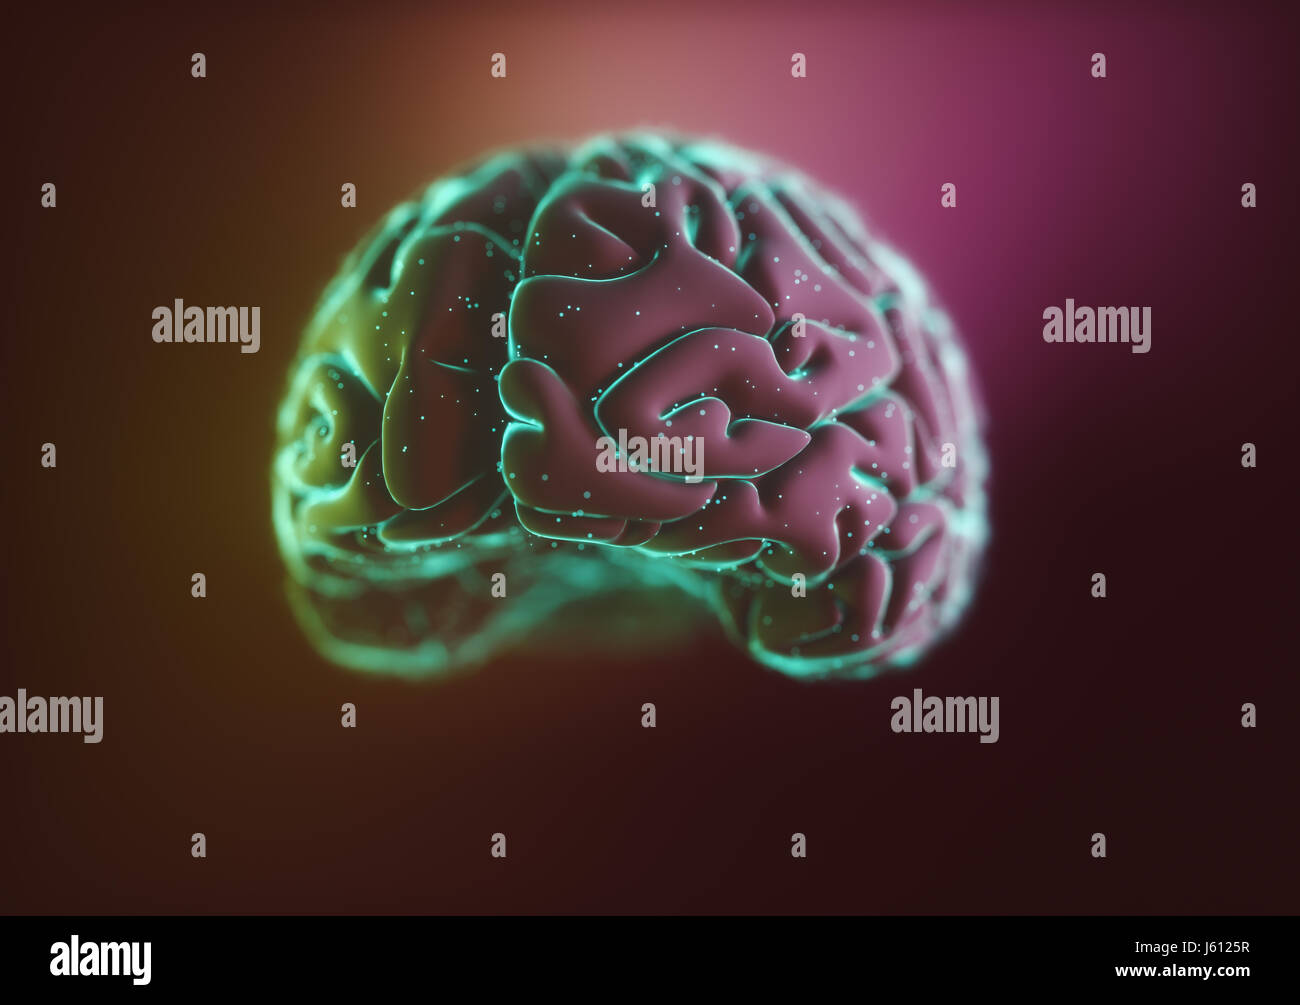 3D illustration. Stylized image of a brain inside a liquid with air bubbles around. - Stock Image